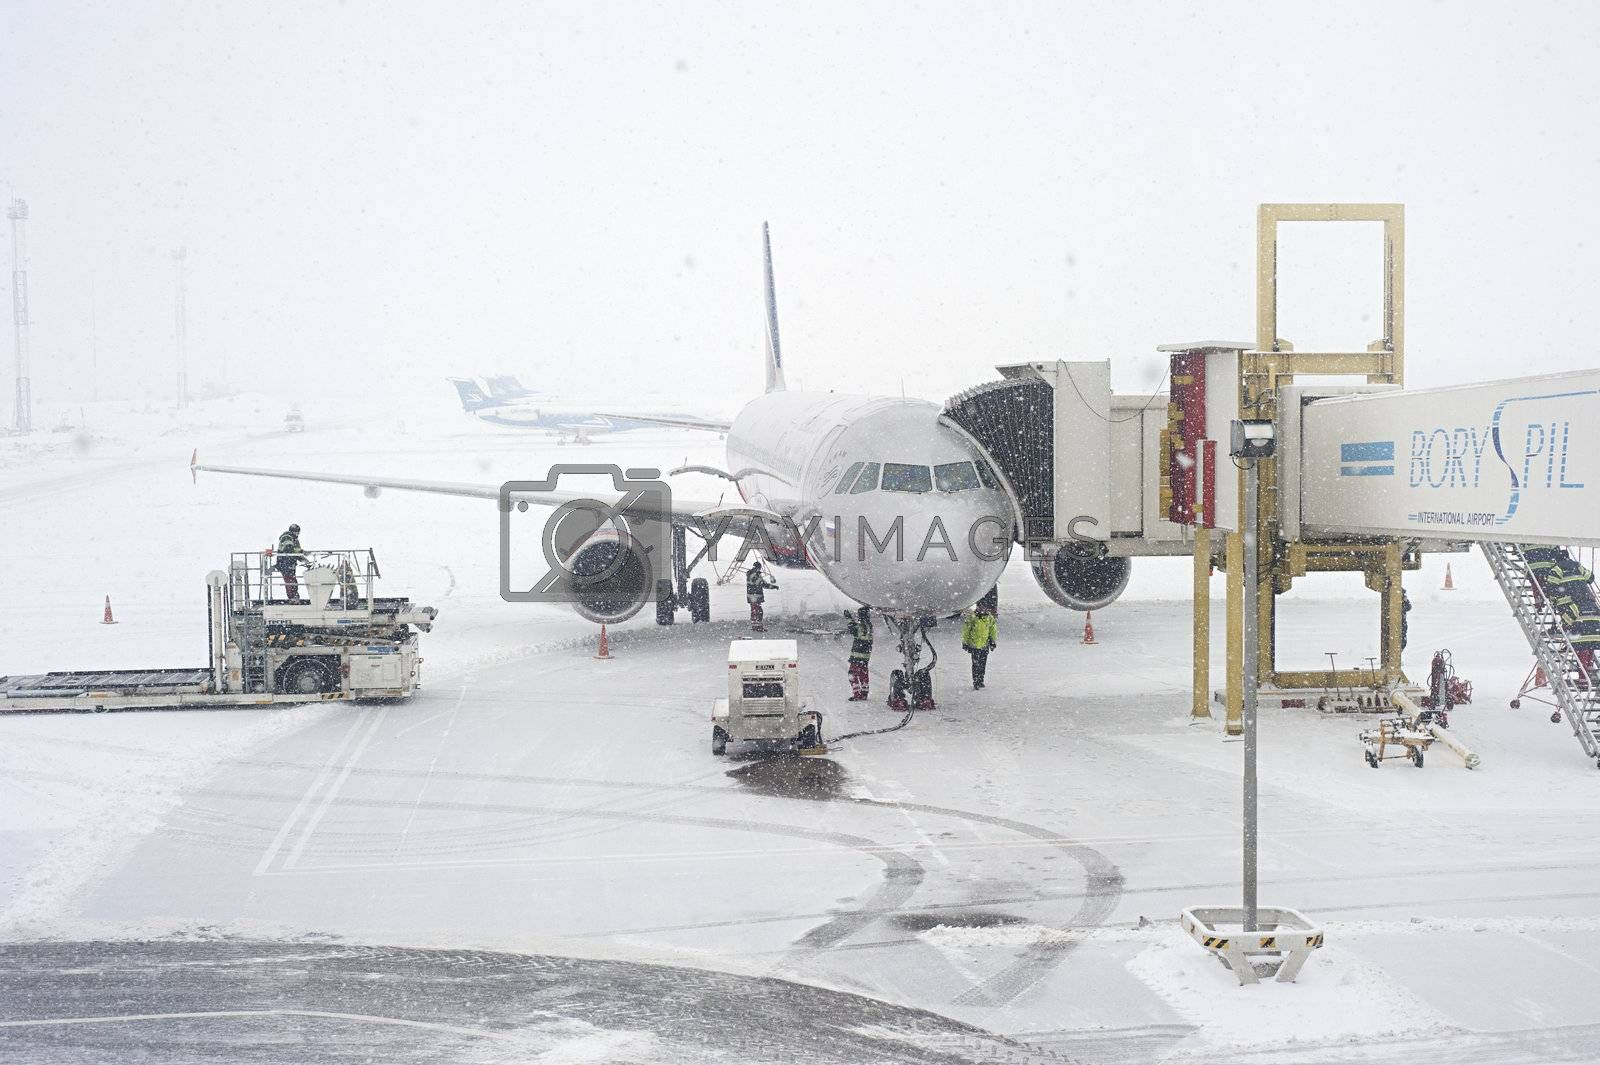 Kiev, Ukraine - January 12, 2013: Unidentified workers prepairing an airplane duirng the snowfall. Kiev was covered by around 20 inches of snow, the largest amount to fall in one weekend since records in 1889